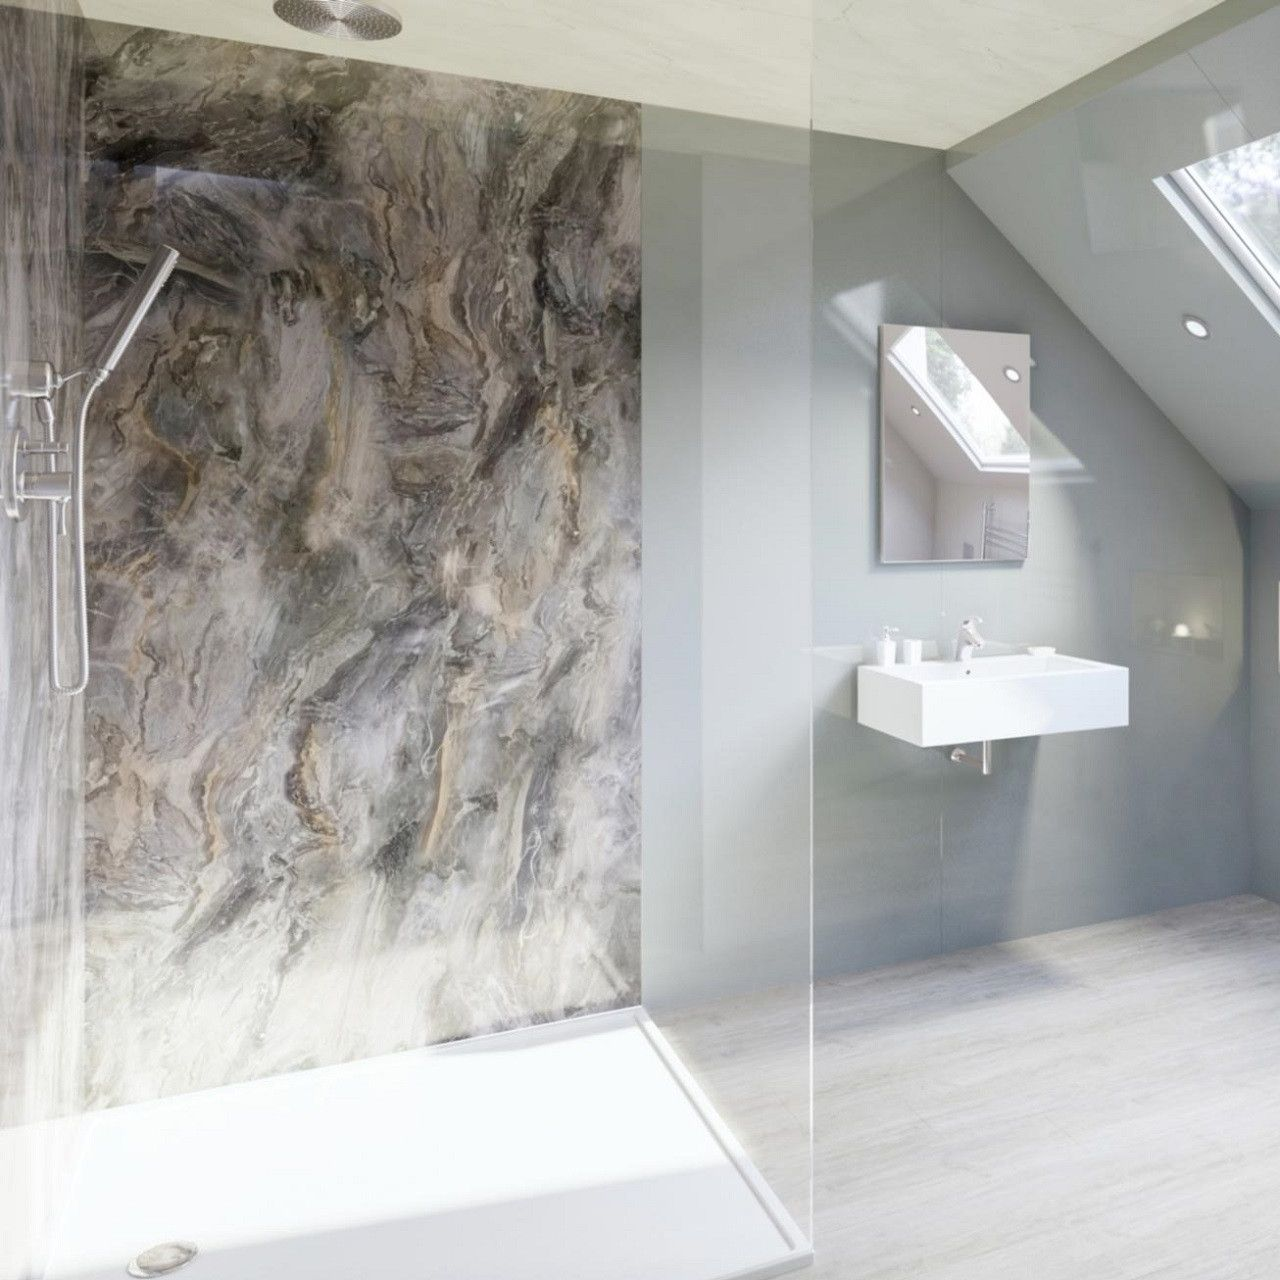 Looking For An Alternative To Bathroom Tiles Why Not Opt For Waterproof Wall Panels These Cl Bathroom Wall Panels Bathroom Shower Walls Bathroom Design Decor